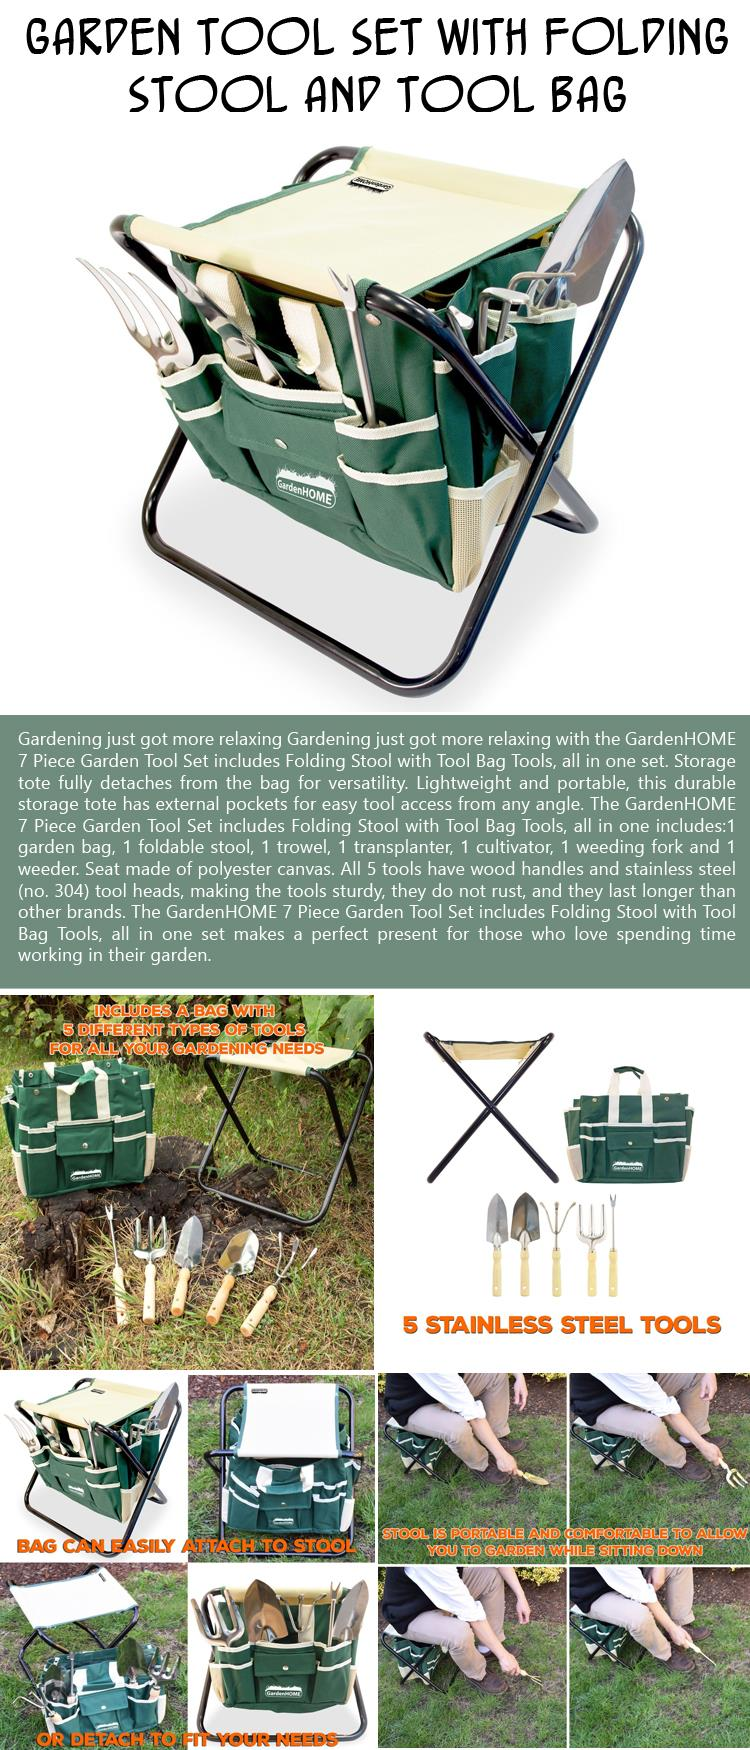 Garden Tool Set with Folding Stool and Tool Bag